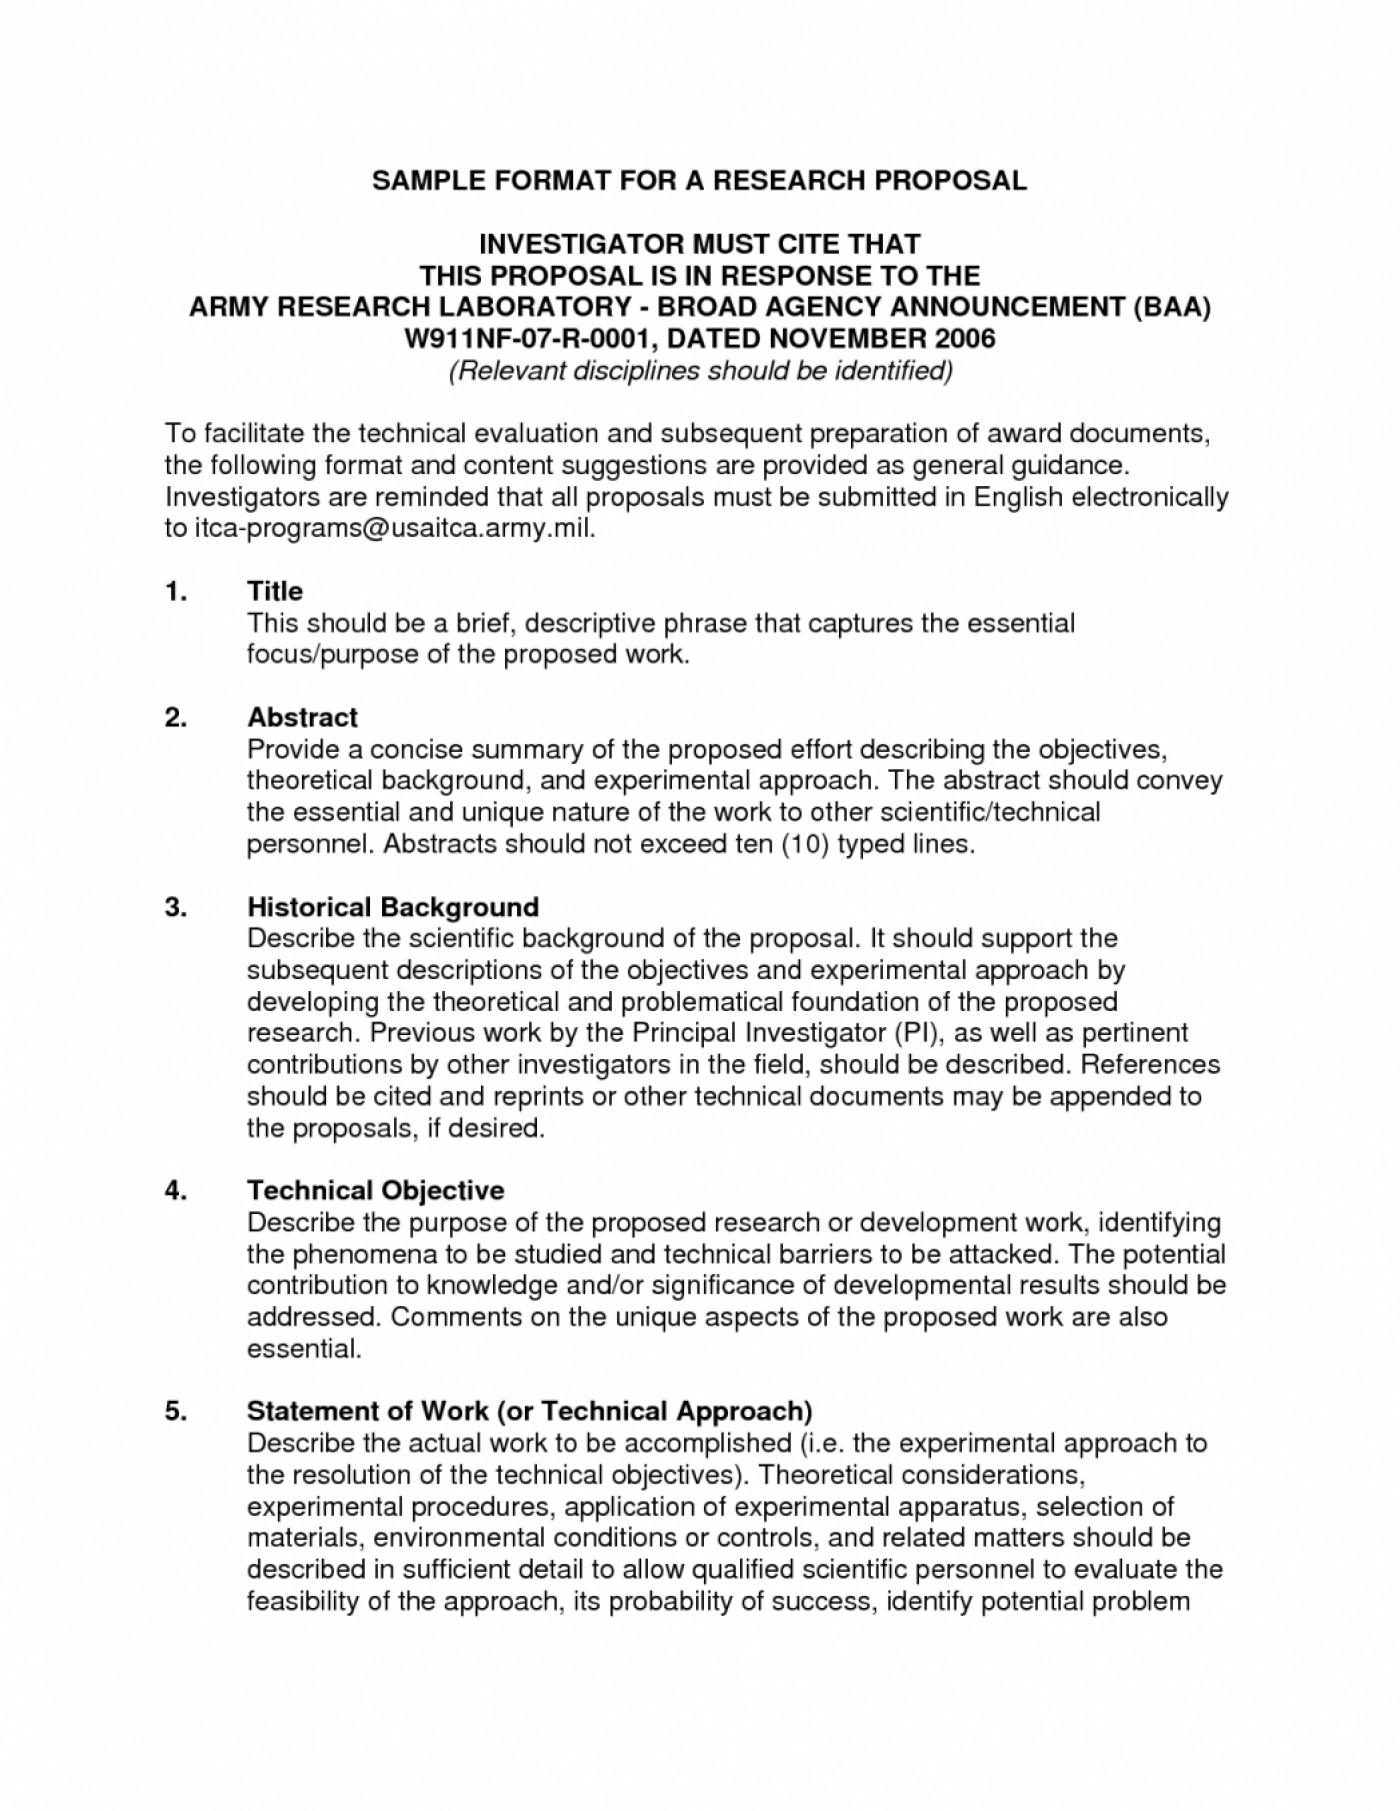 018 Evaluation Essay Outline For Example Of An Critical Research Proposal Template Qic Movie Layout Self Film Source Incredible Book Samples On Movies Format 1400